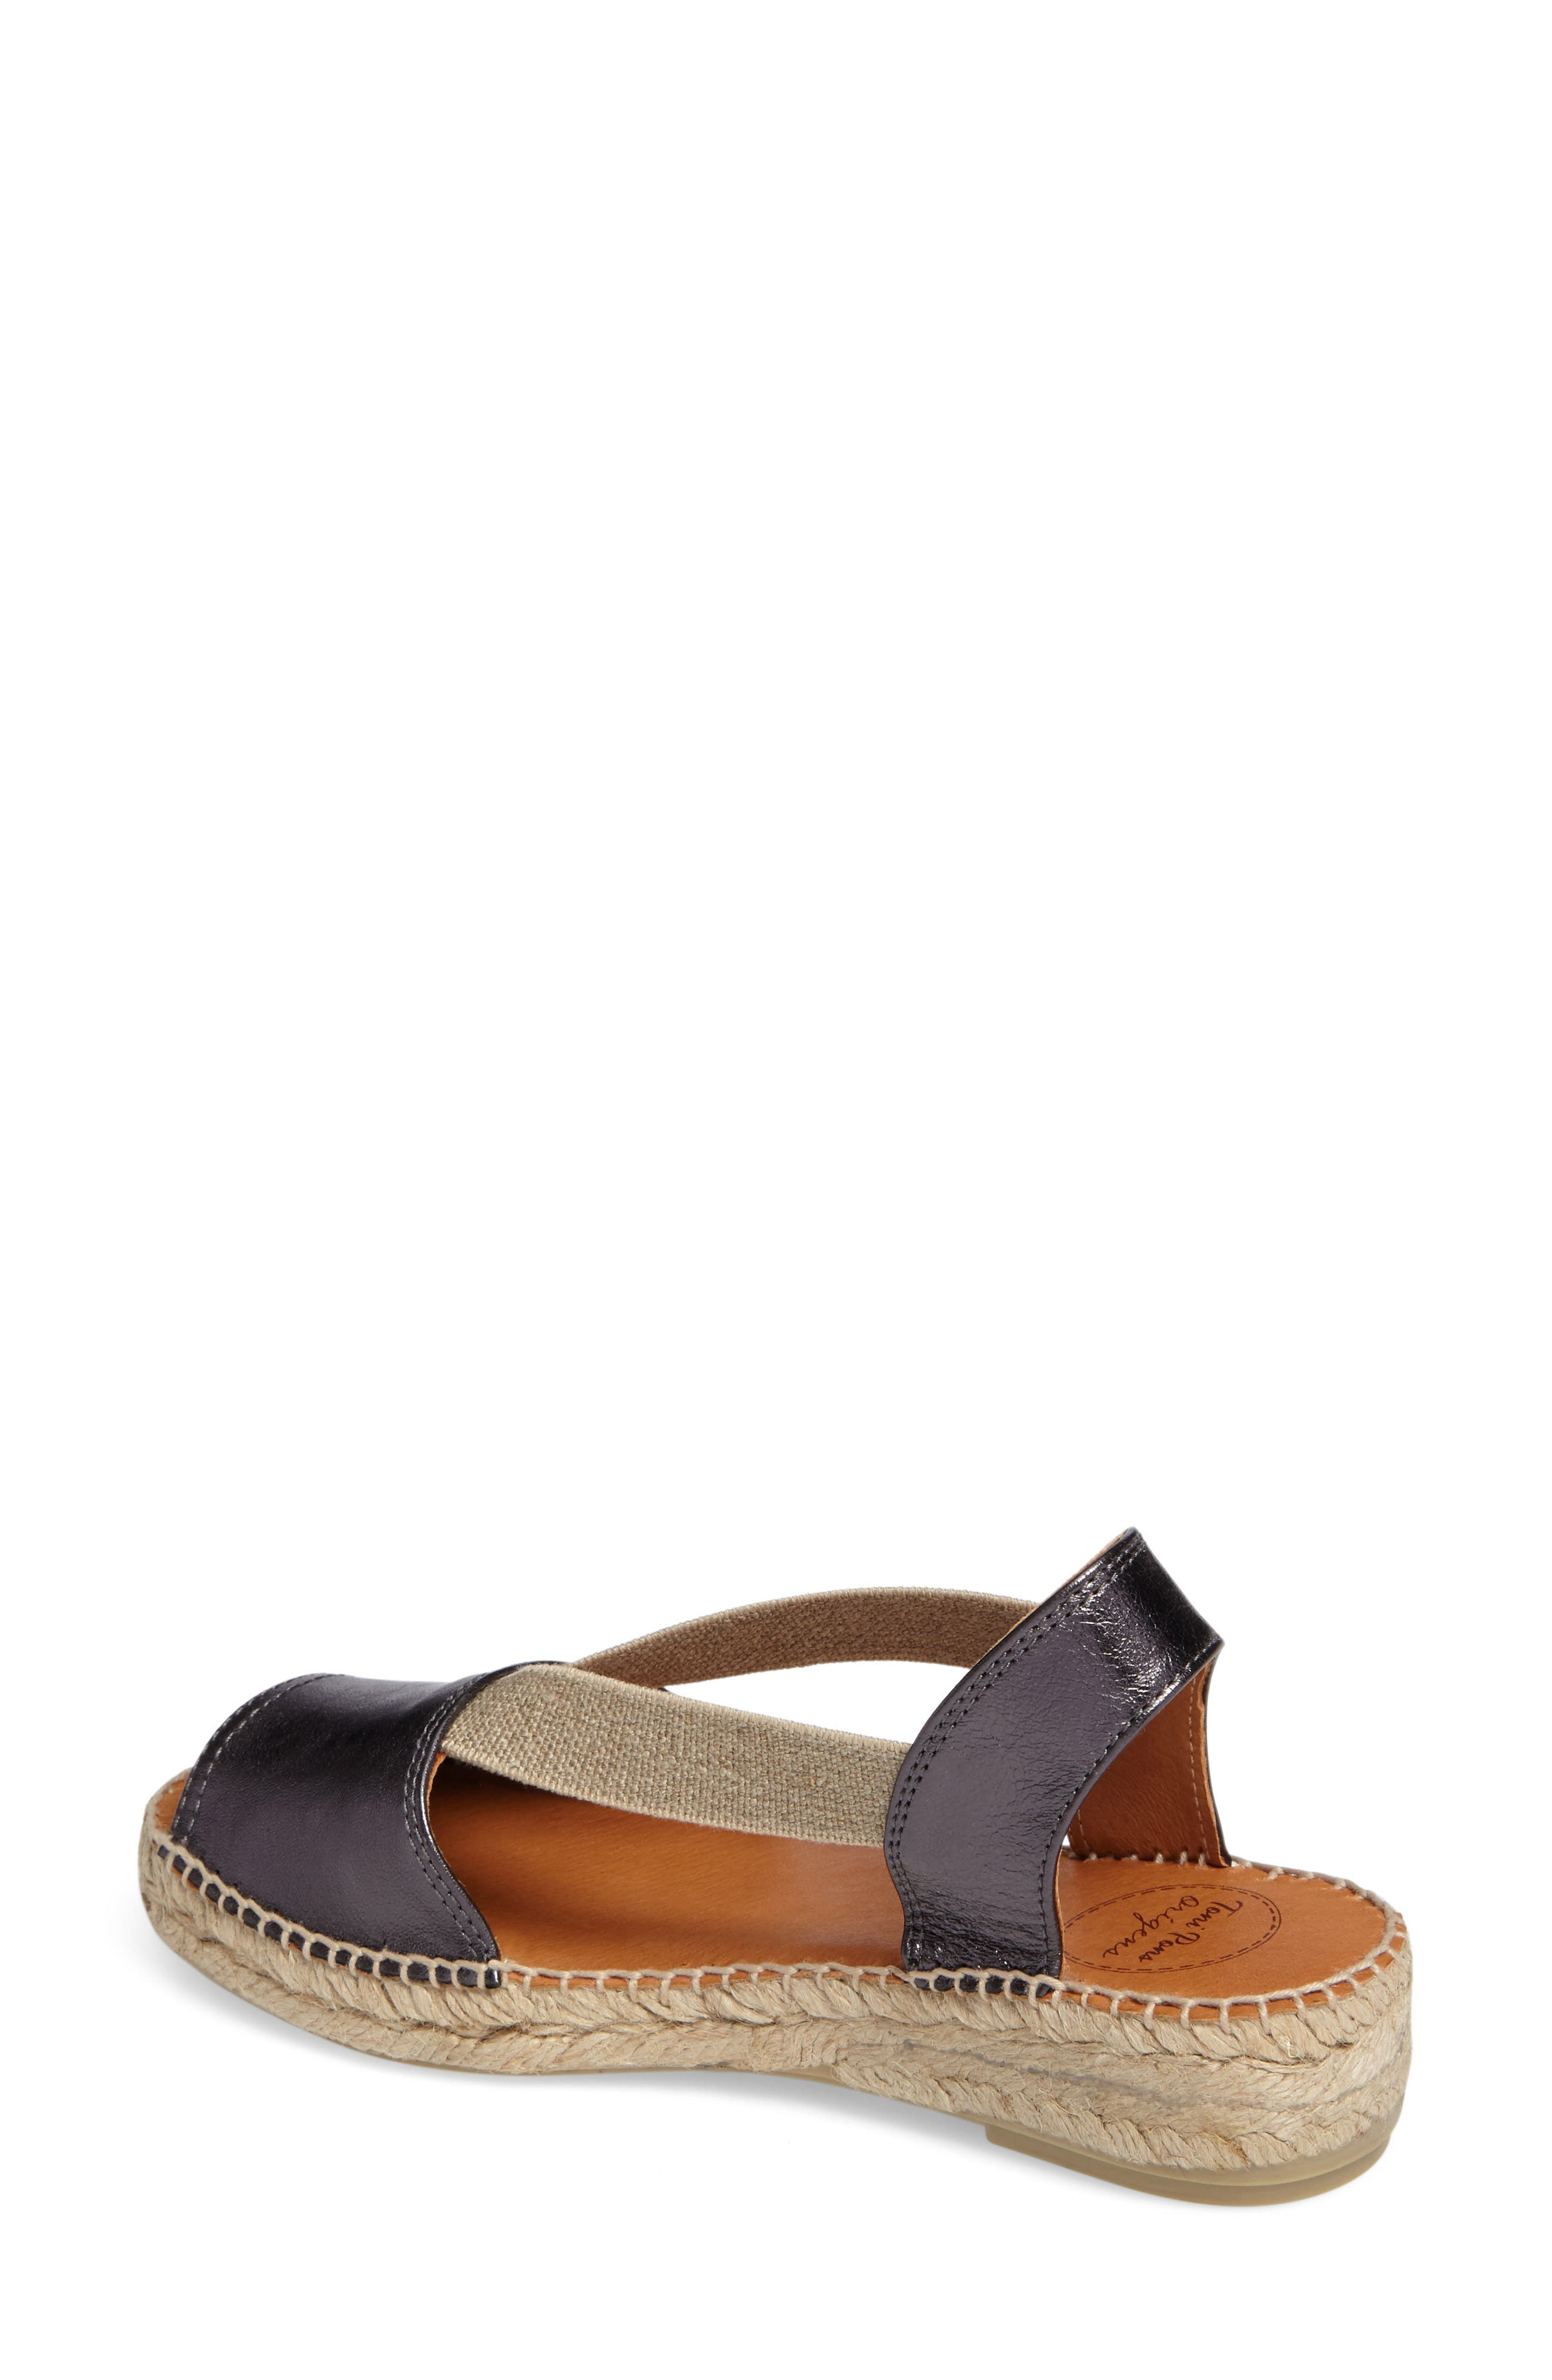 Etna Espadrille Sandal,                             Alternate thumbnail 2, color,                             LEAD LEATHER